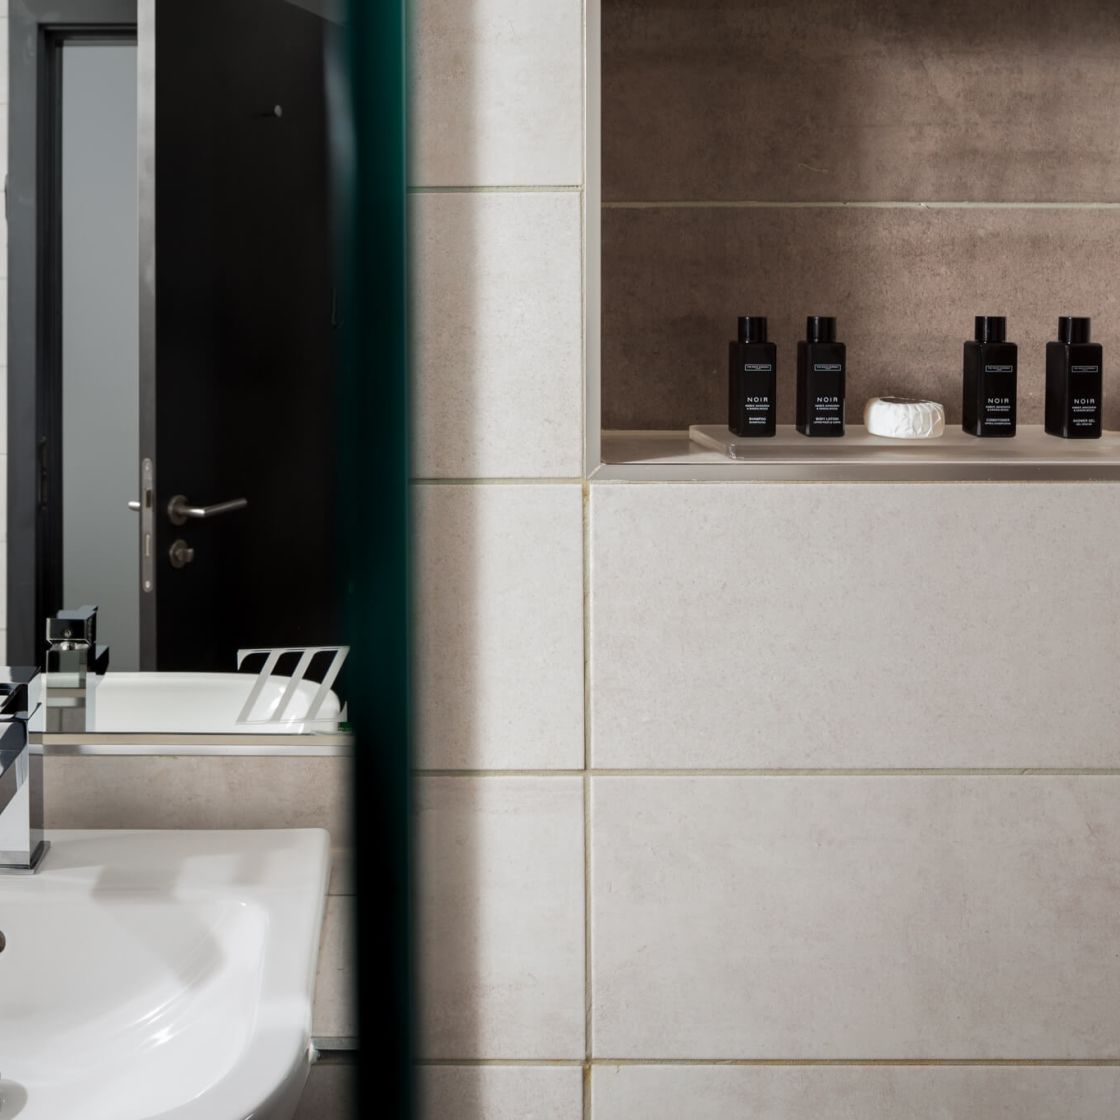 En-Suite Bathroom with White Company Toiletries. Student Accommodation in Nottingham